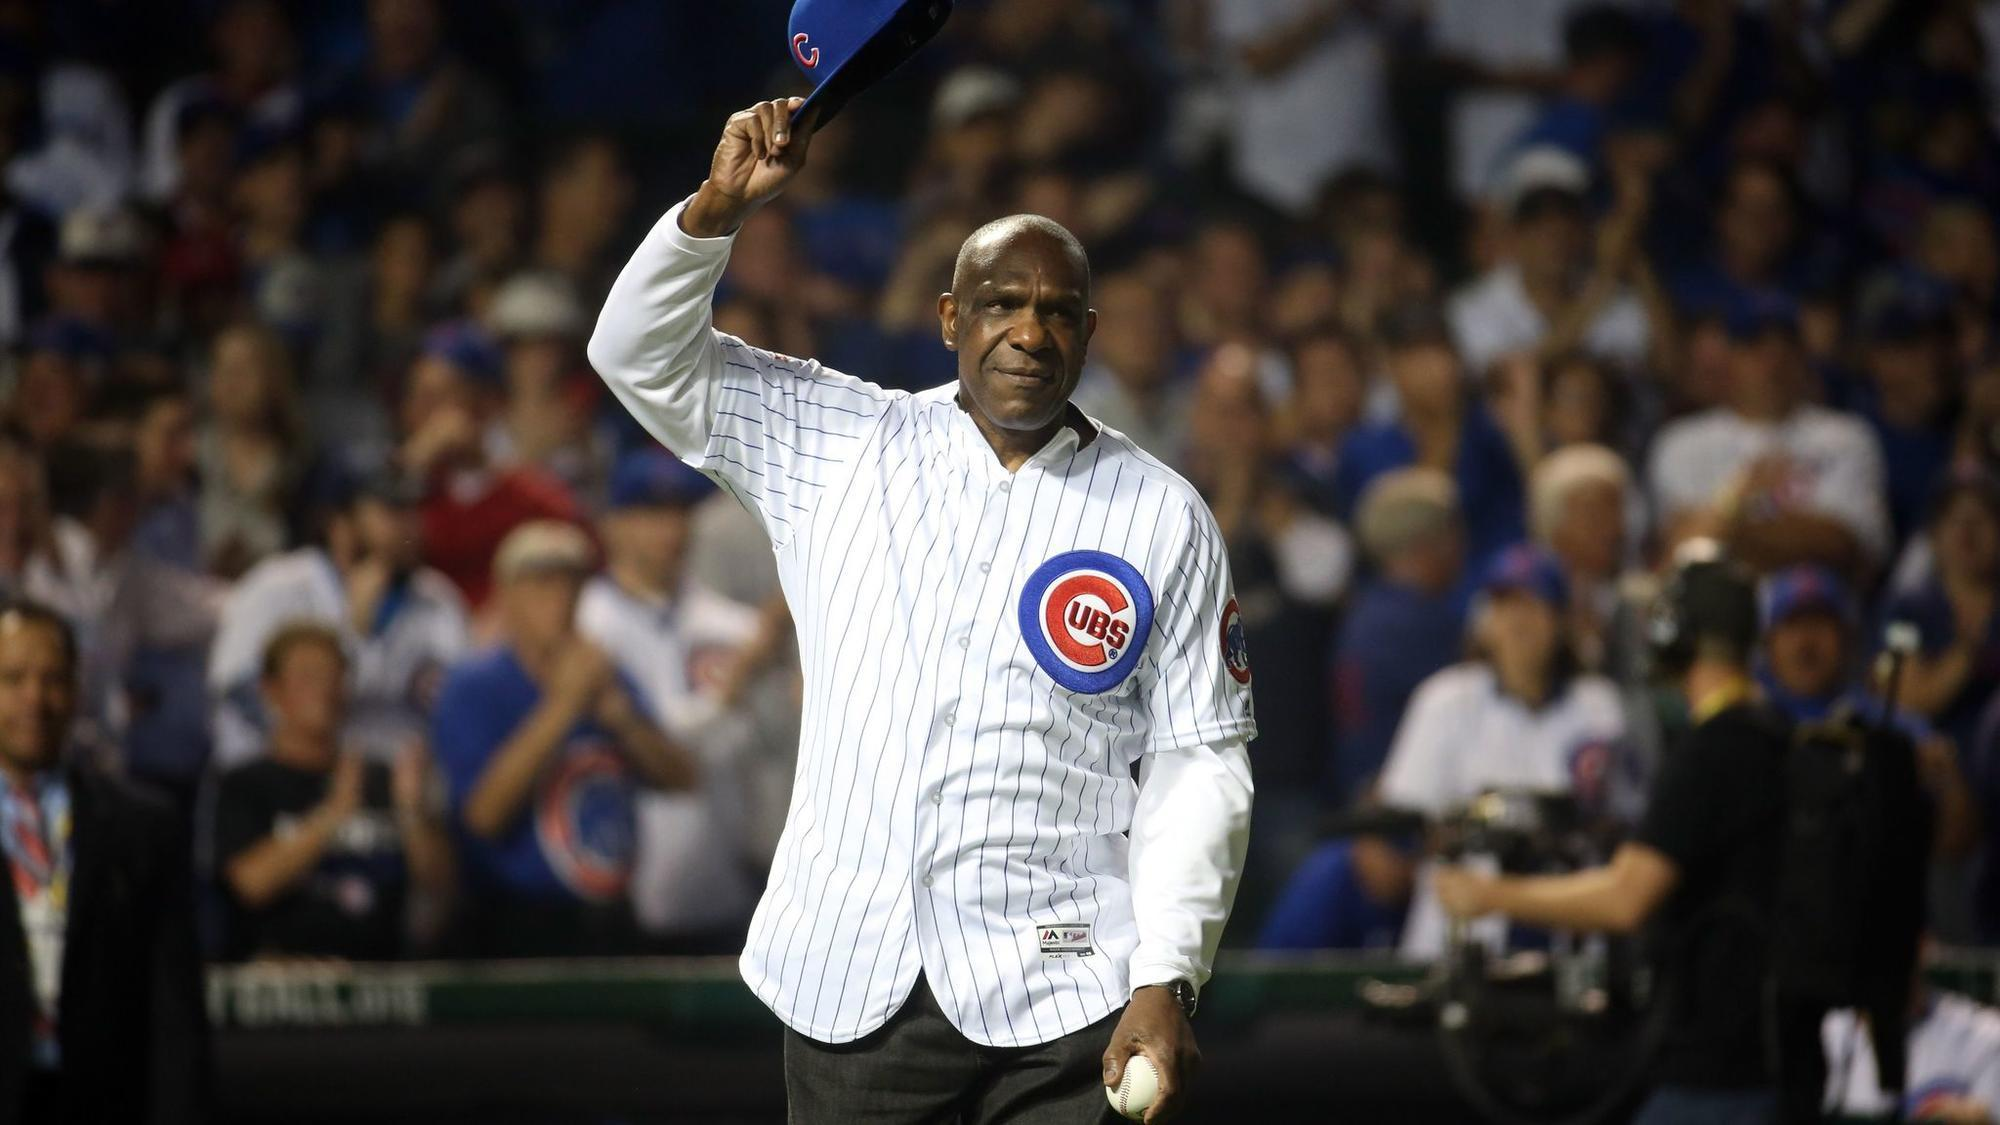 Ct-spt-cubs-andre-dawson-20180108